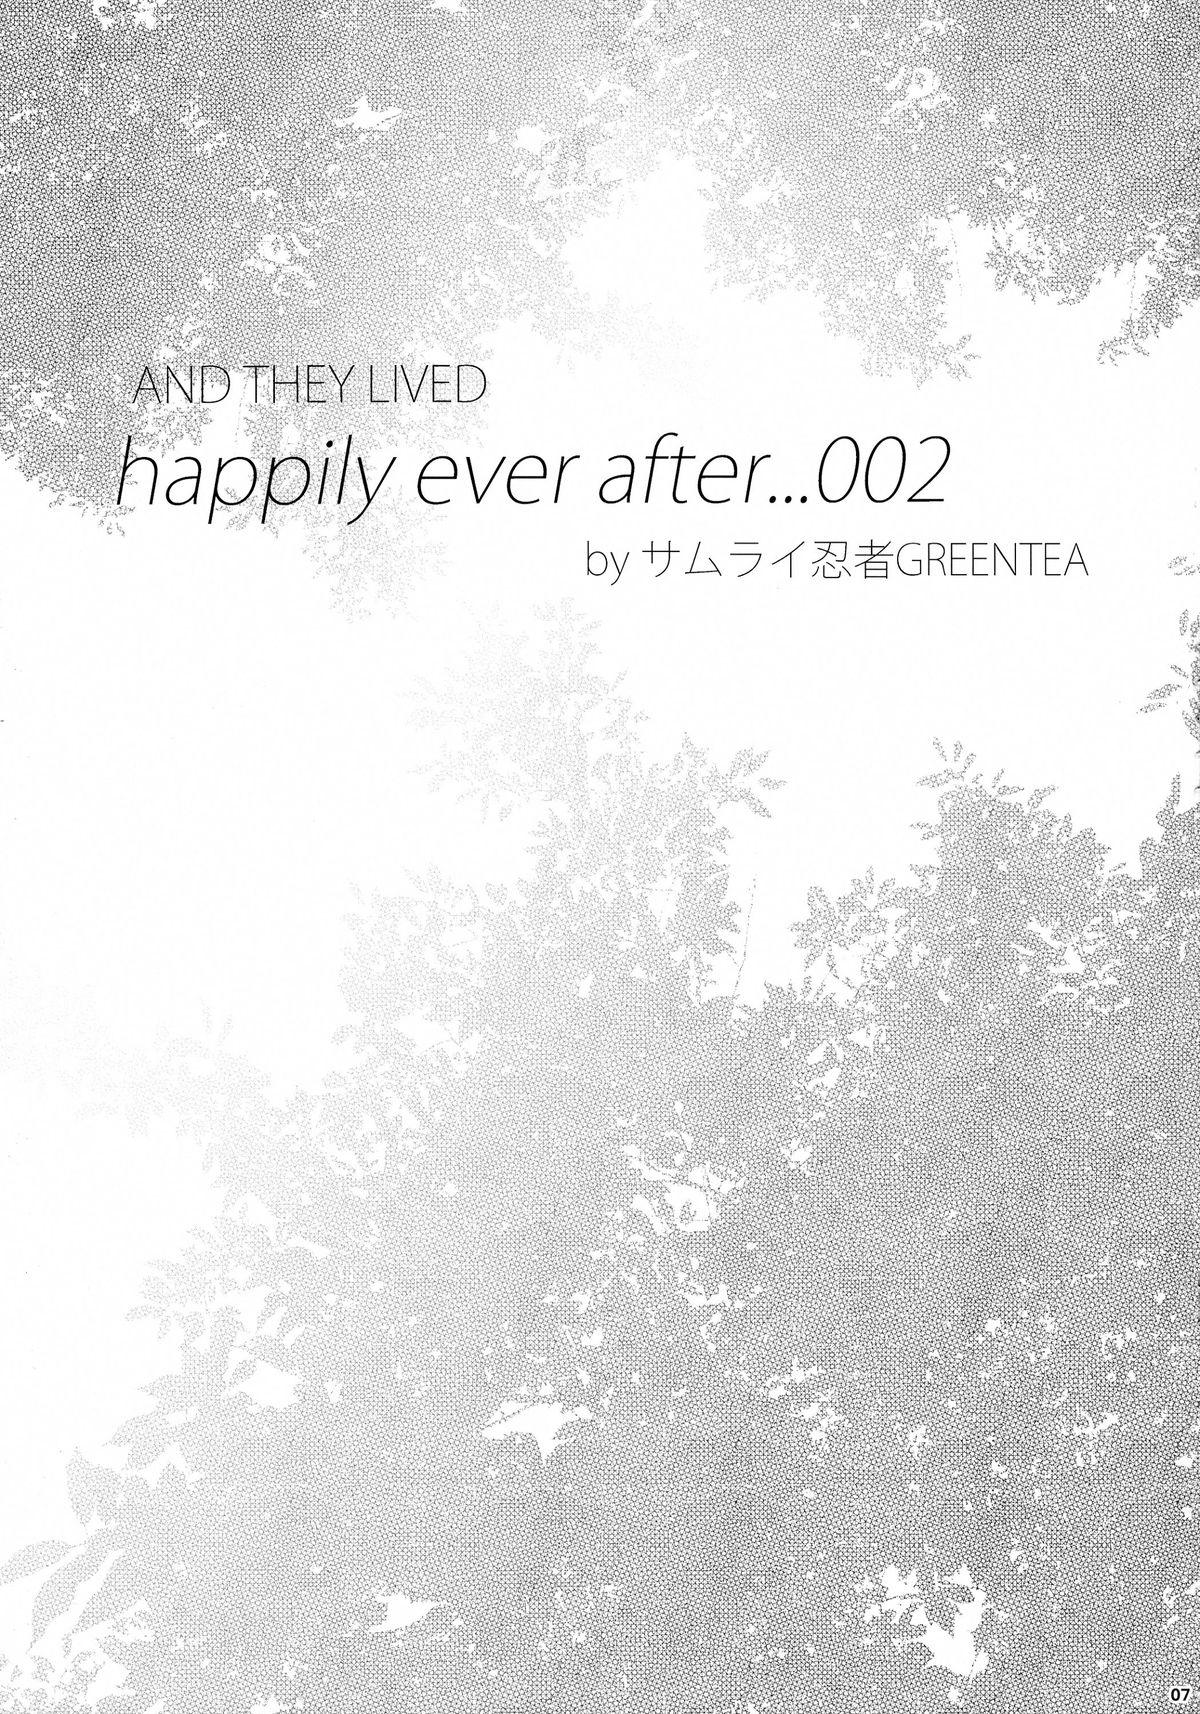 AND THEY LIVED happily ever after... 002 6